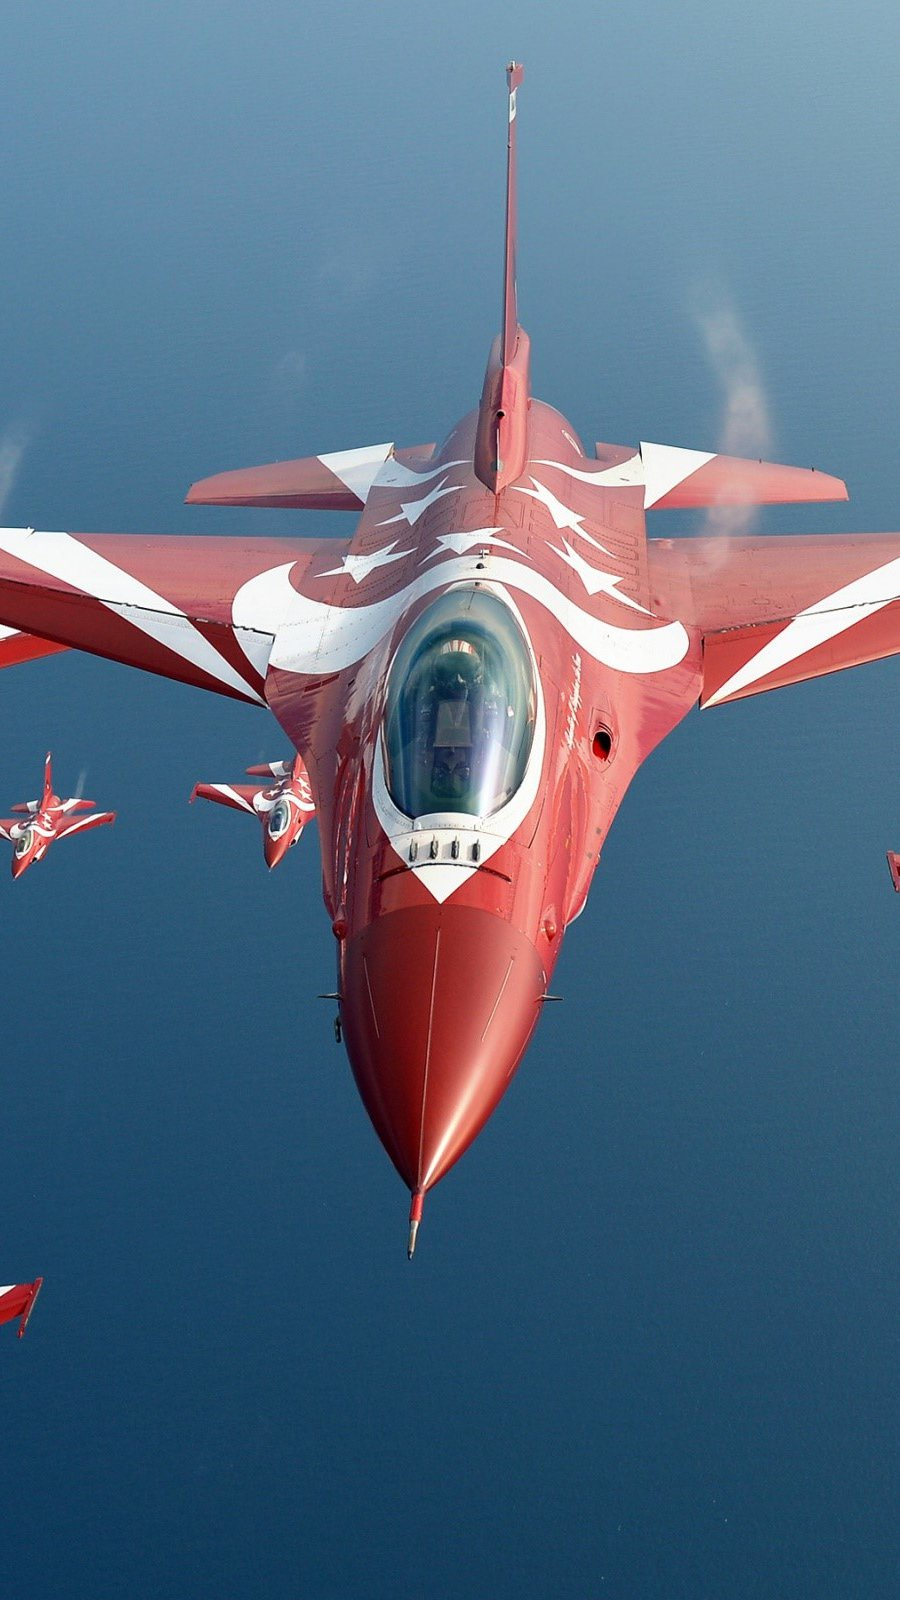 Wallpaper General Dynamics F16 Fighting Falcon Jet Fighter Vertical